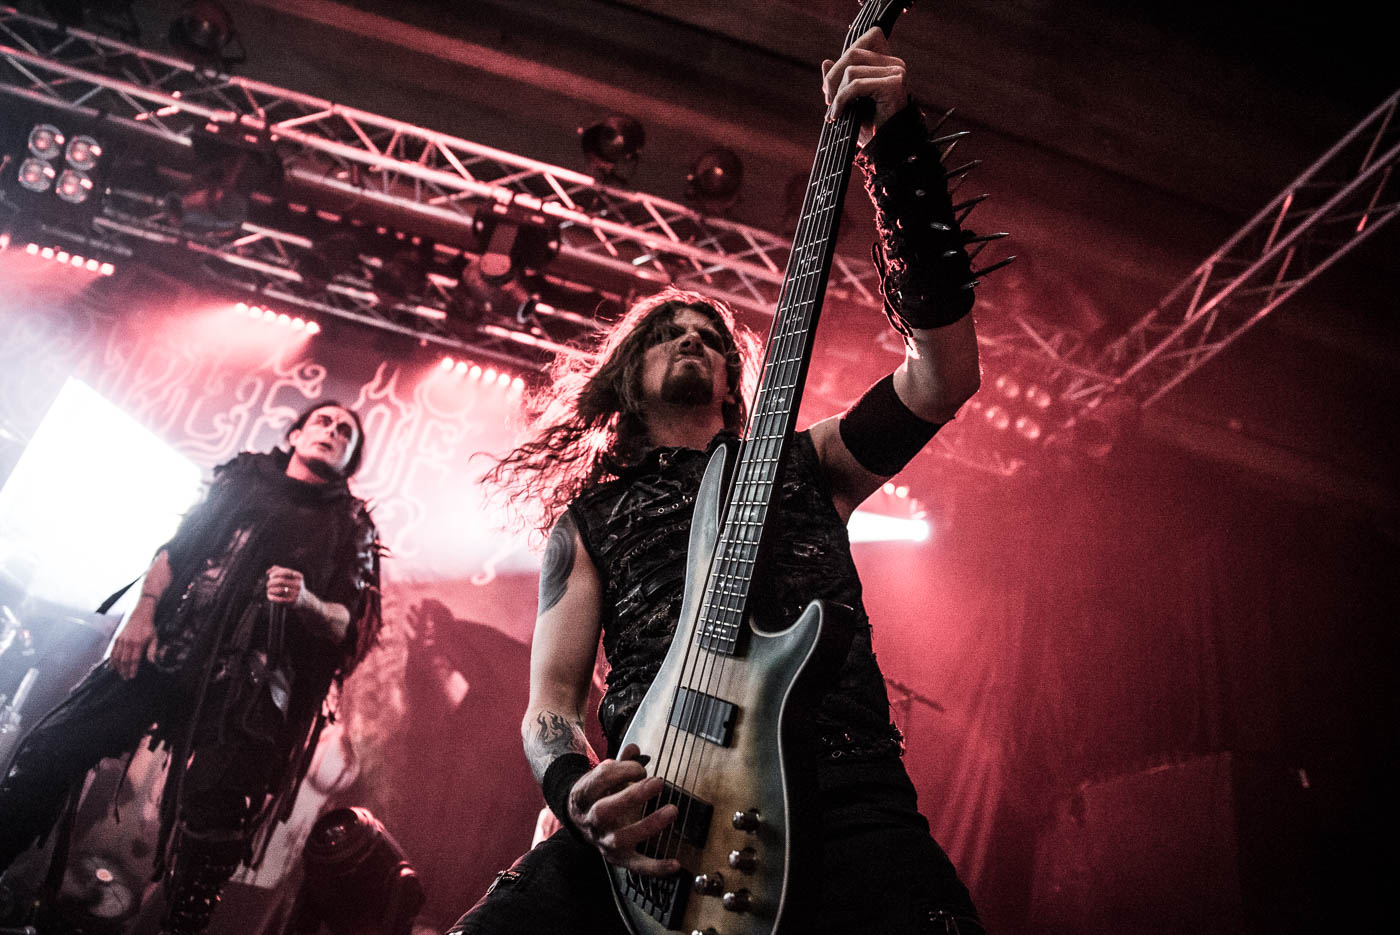 2018004_Cradle_of_Filth@Vulkan_Willy_Larsen_Photography_DH (8 of 35)